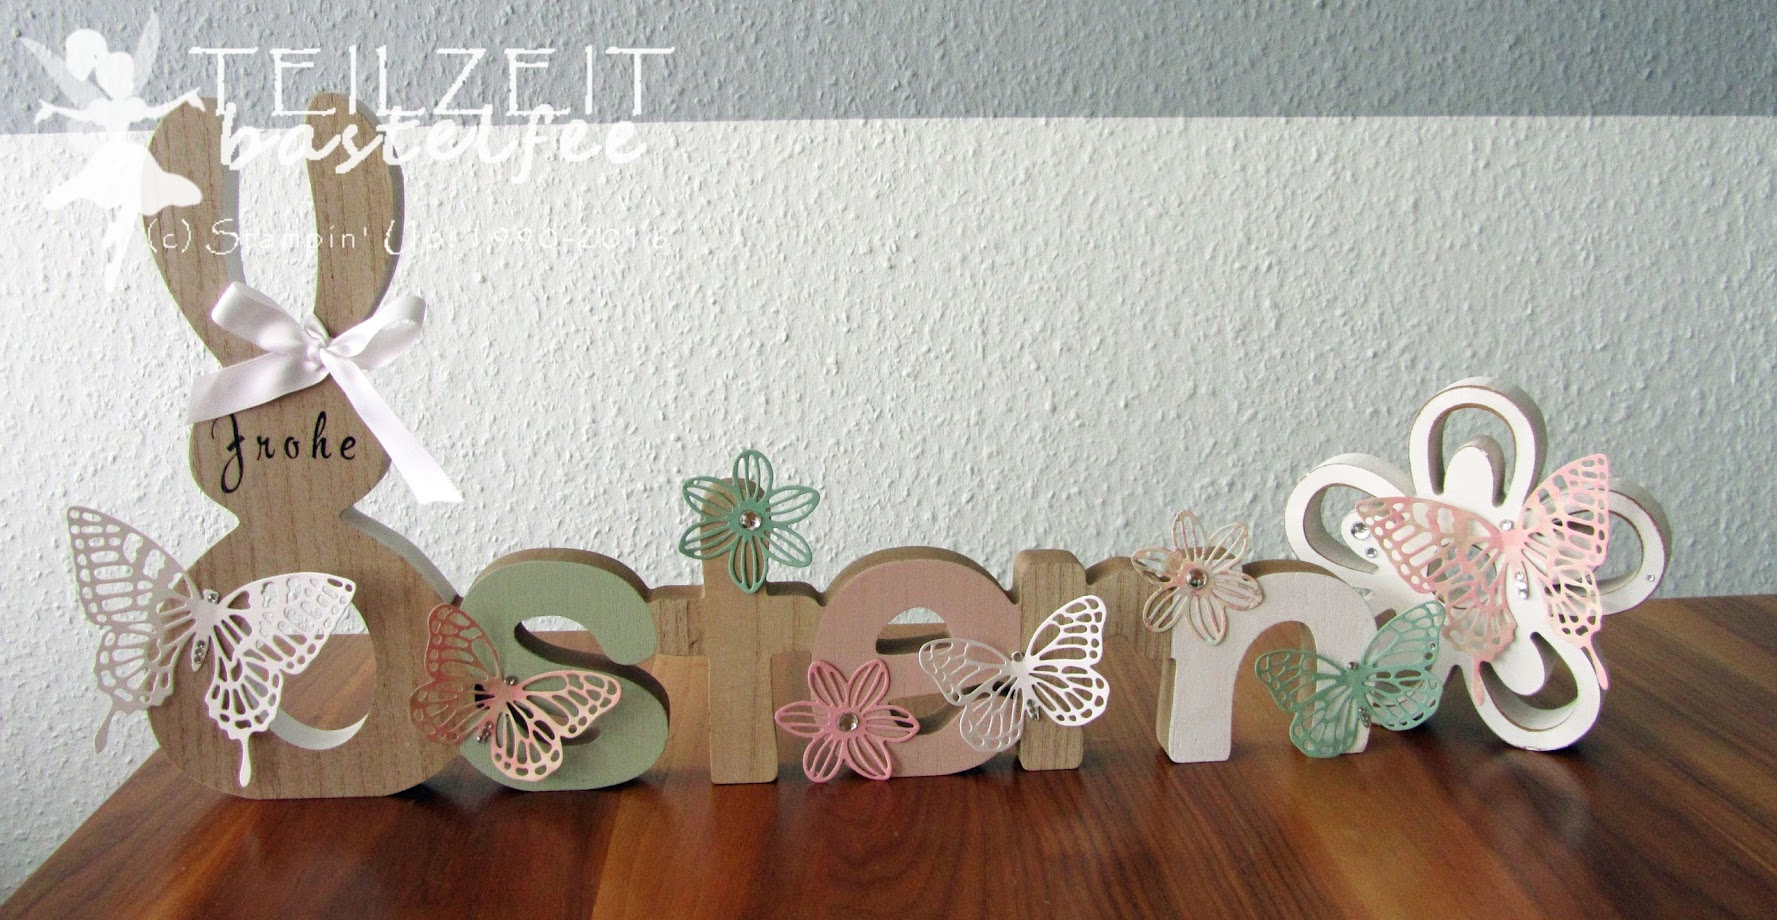 Stampin' Up! - Ostern, Easter, Thinlits Schmetterlinge, Butterflies, Framelits Maiblüten, decoration